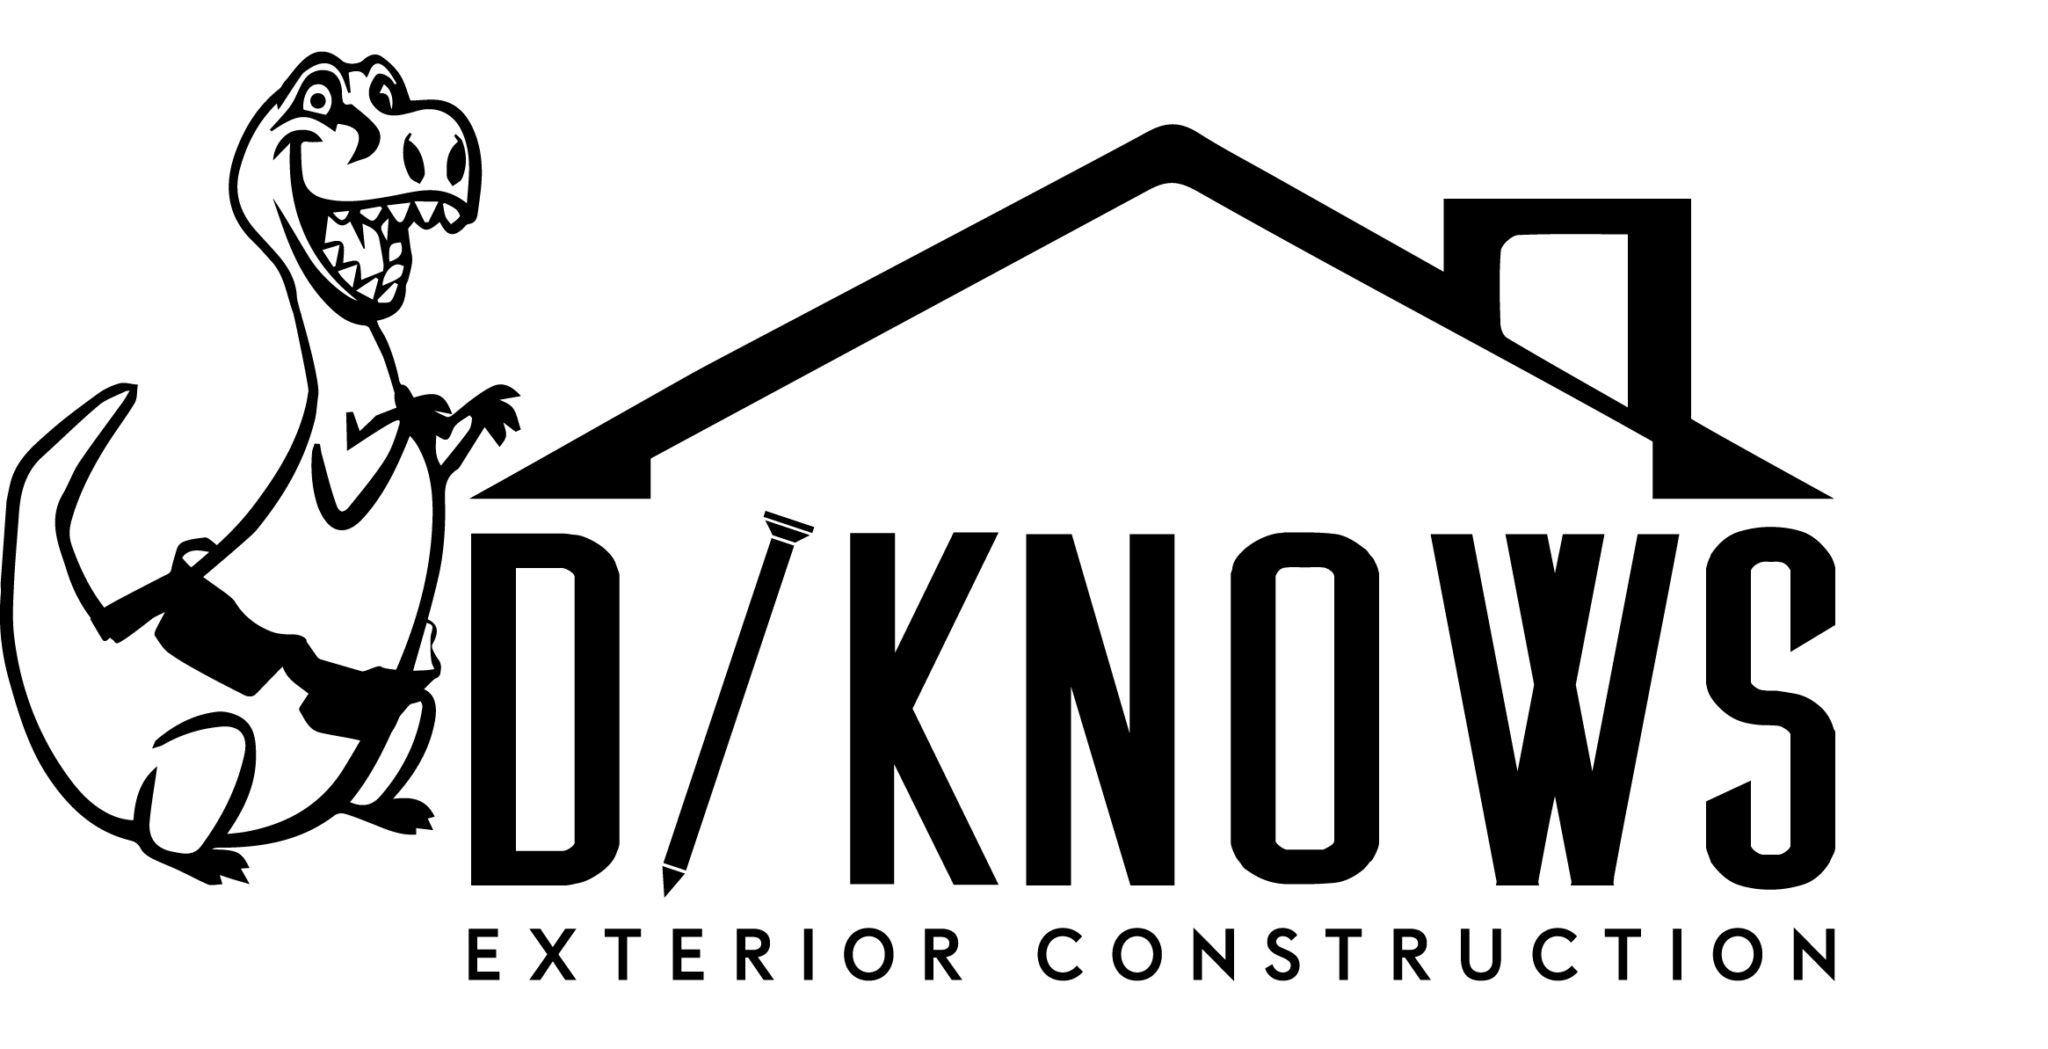 D/Knows Exterior Construction